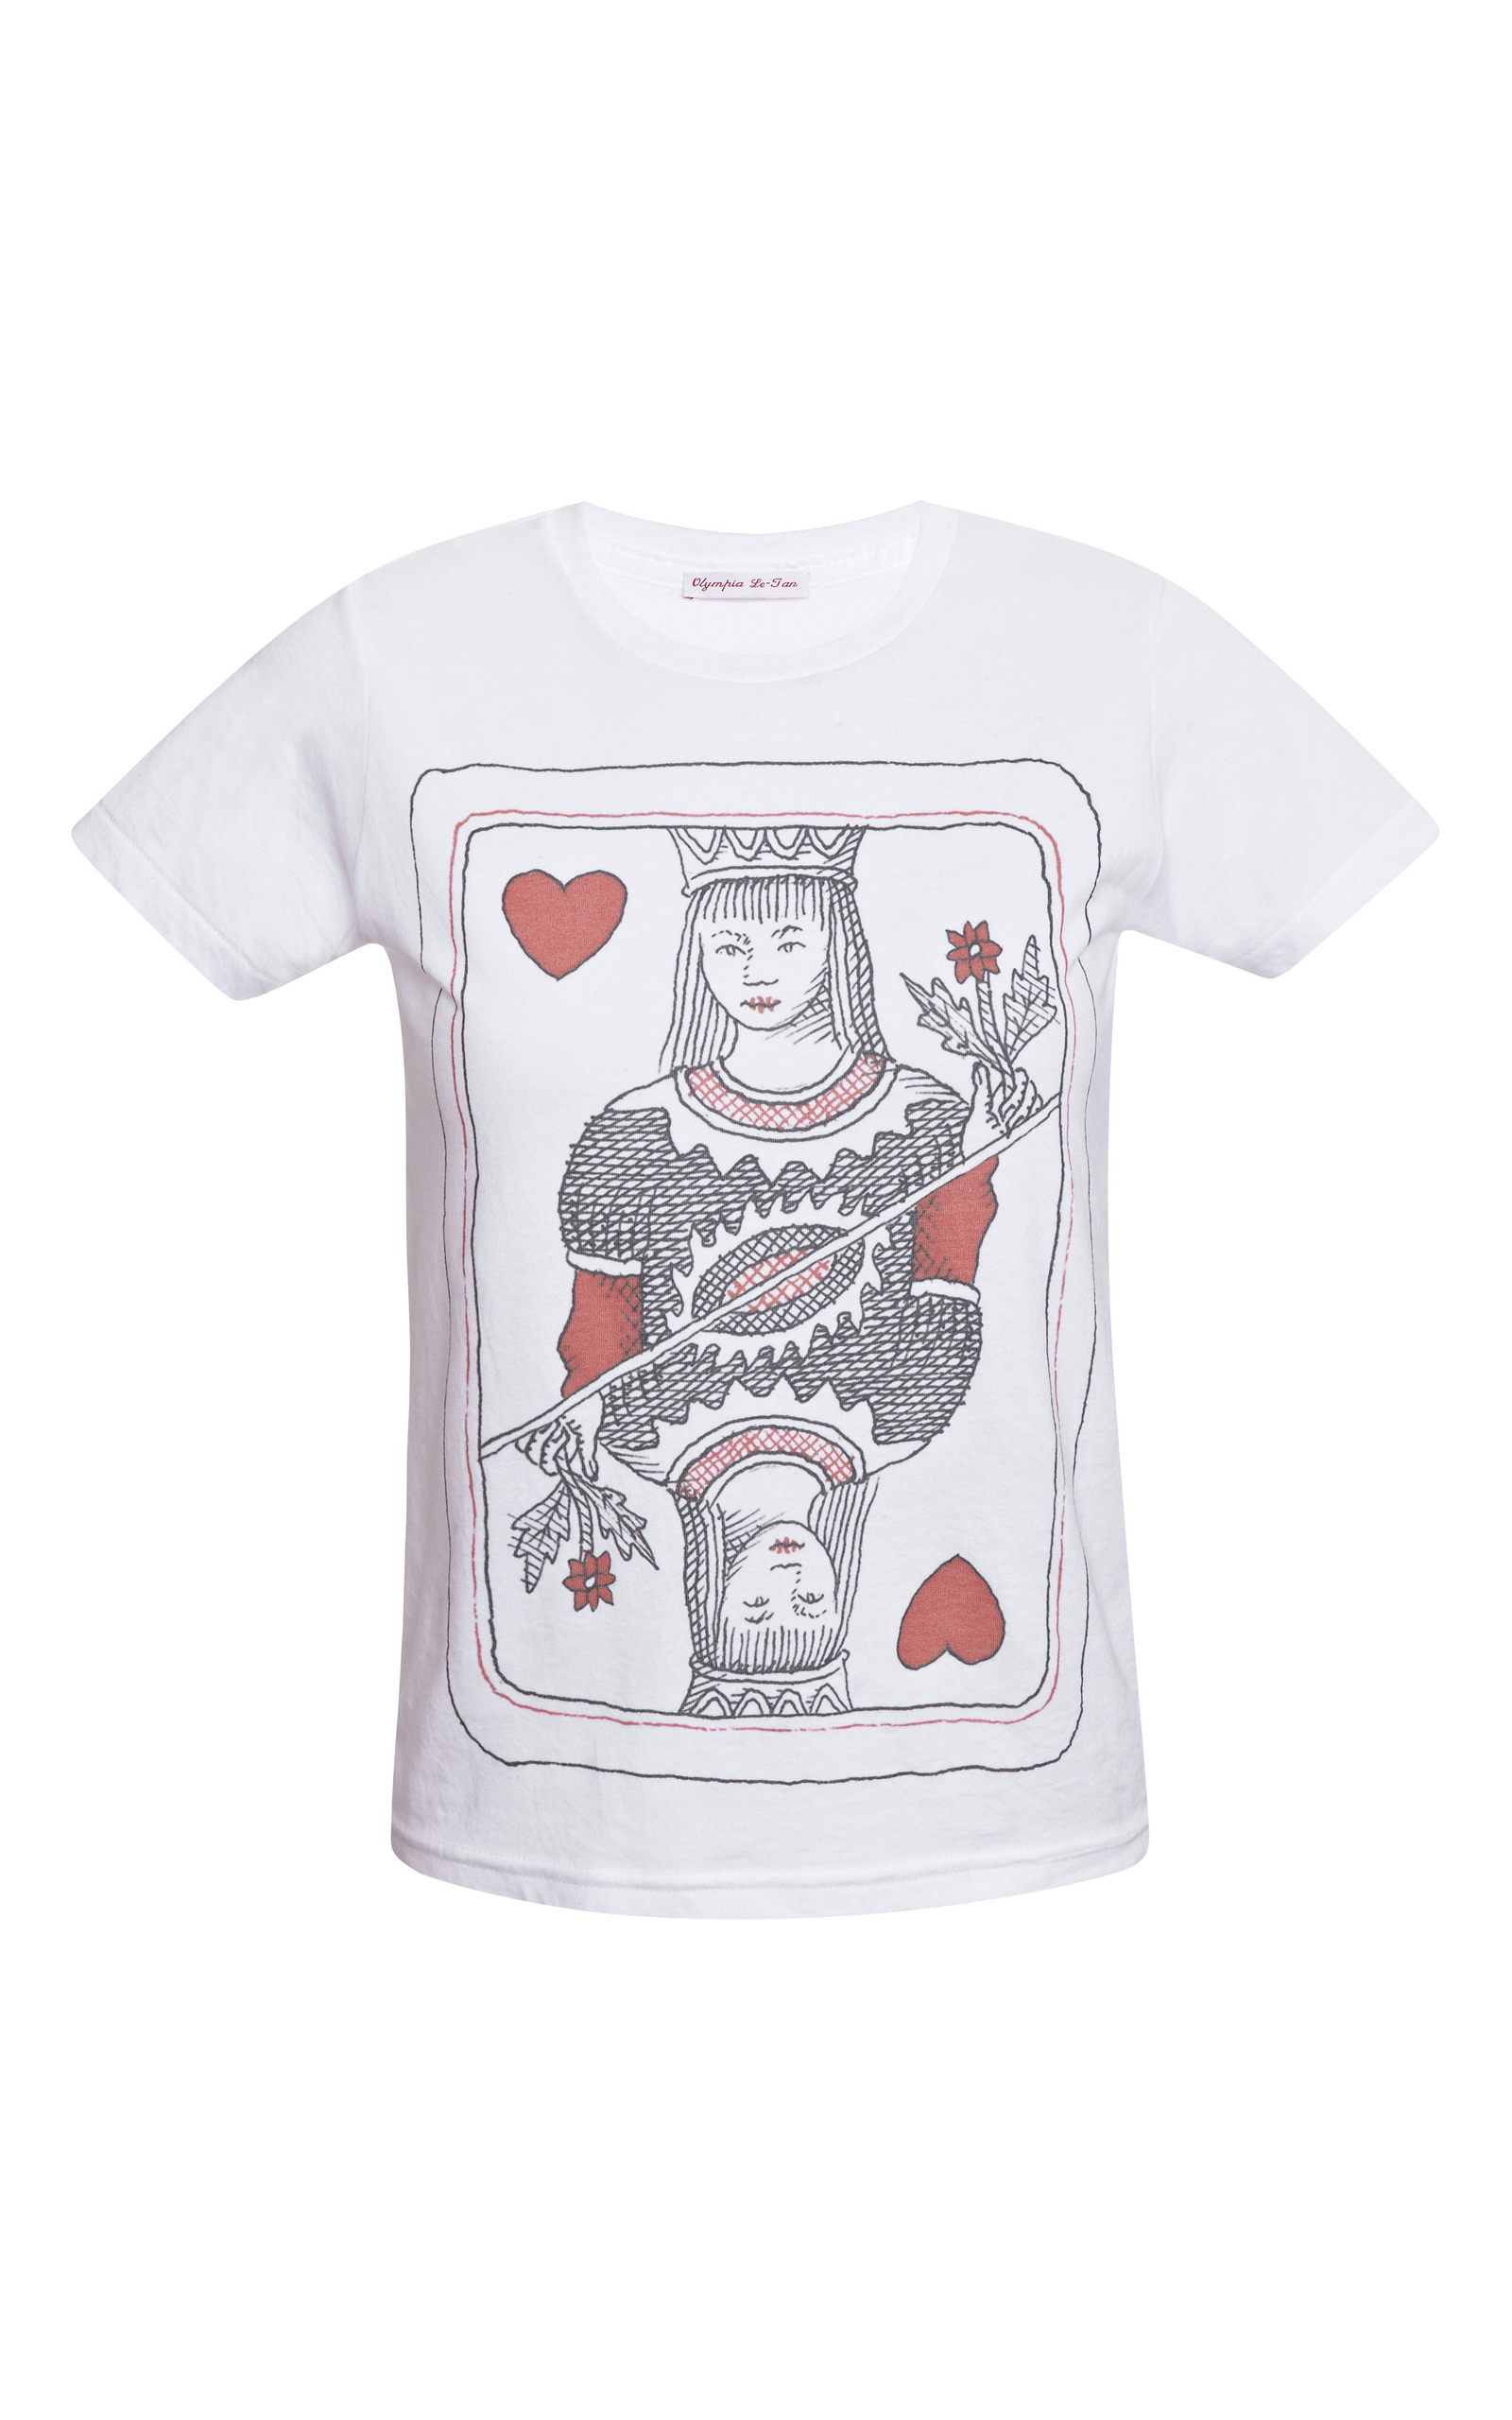 Queen printed t shirt by olympia le tan moda operandi for T shirt printing missouri city tx